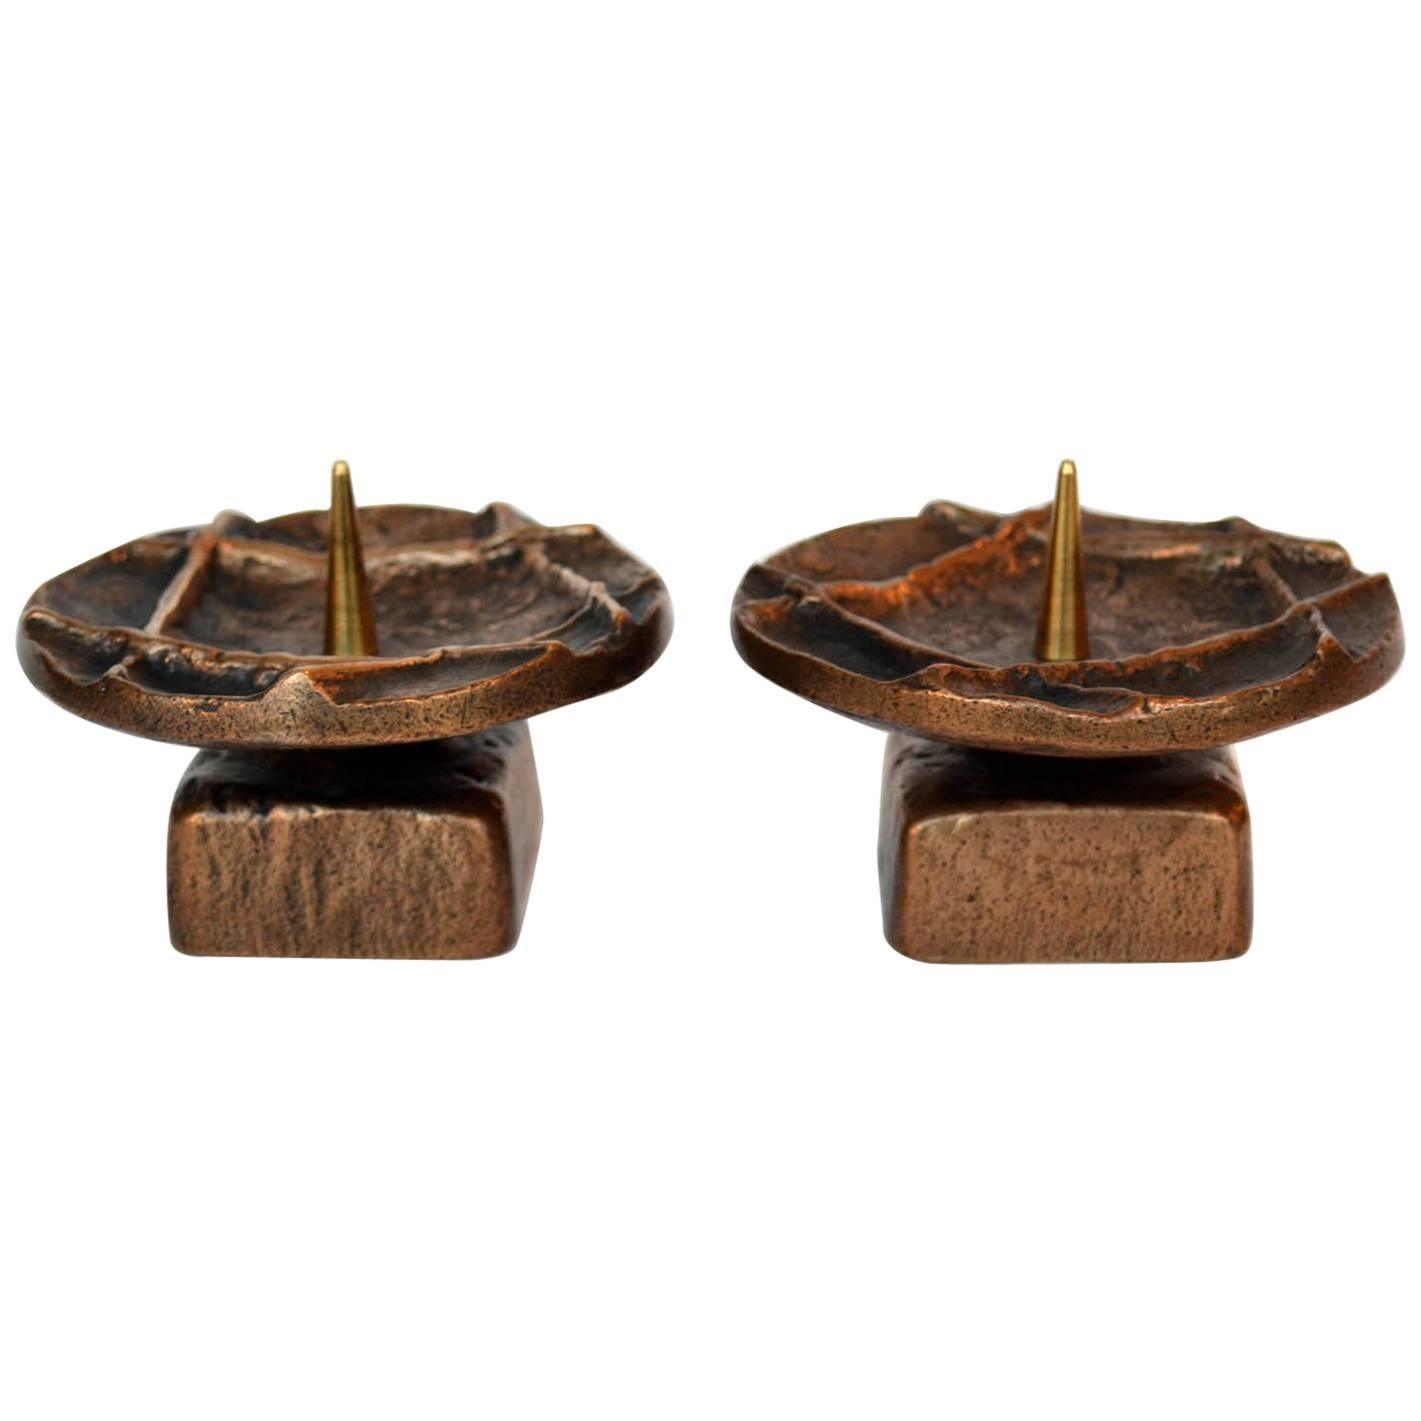 Pair of 1970s Brutalist Bronze Candle Holders